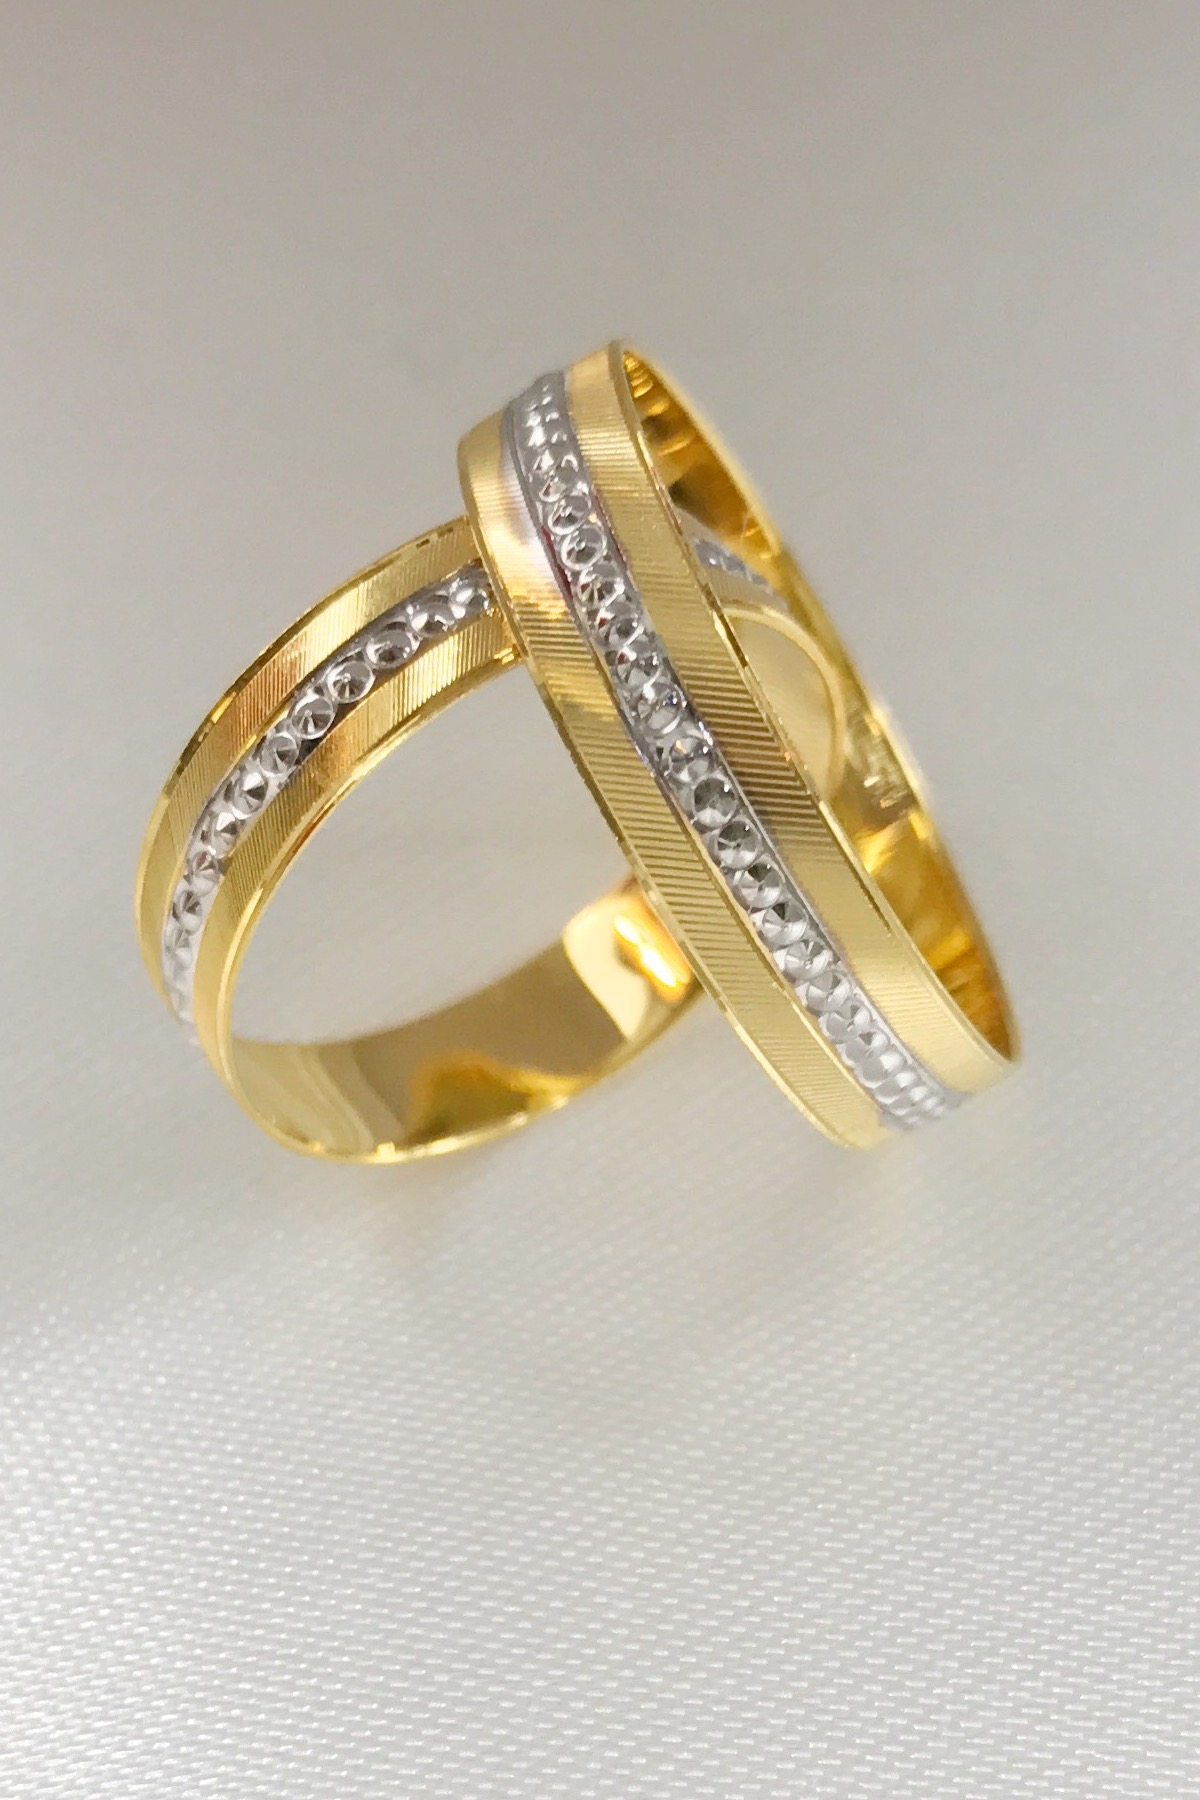 Affordable 18k Yellow Gold Wedding Rings Philippines Jay